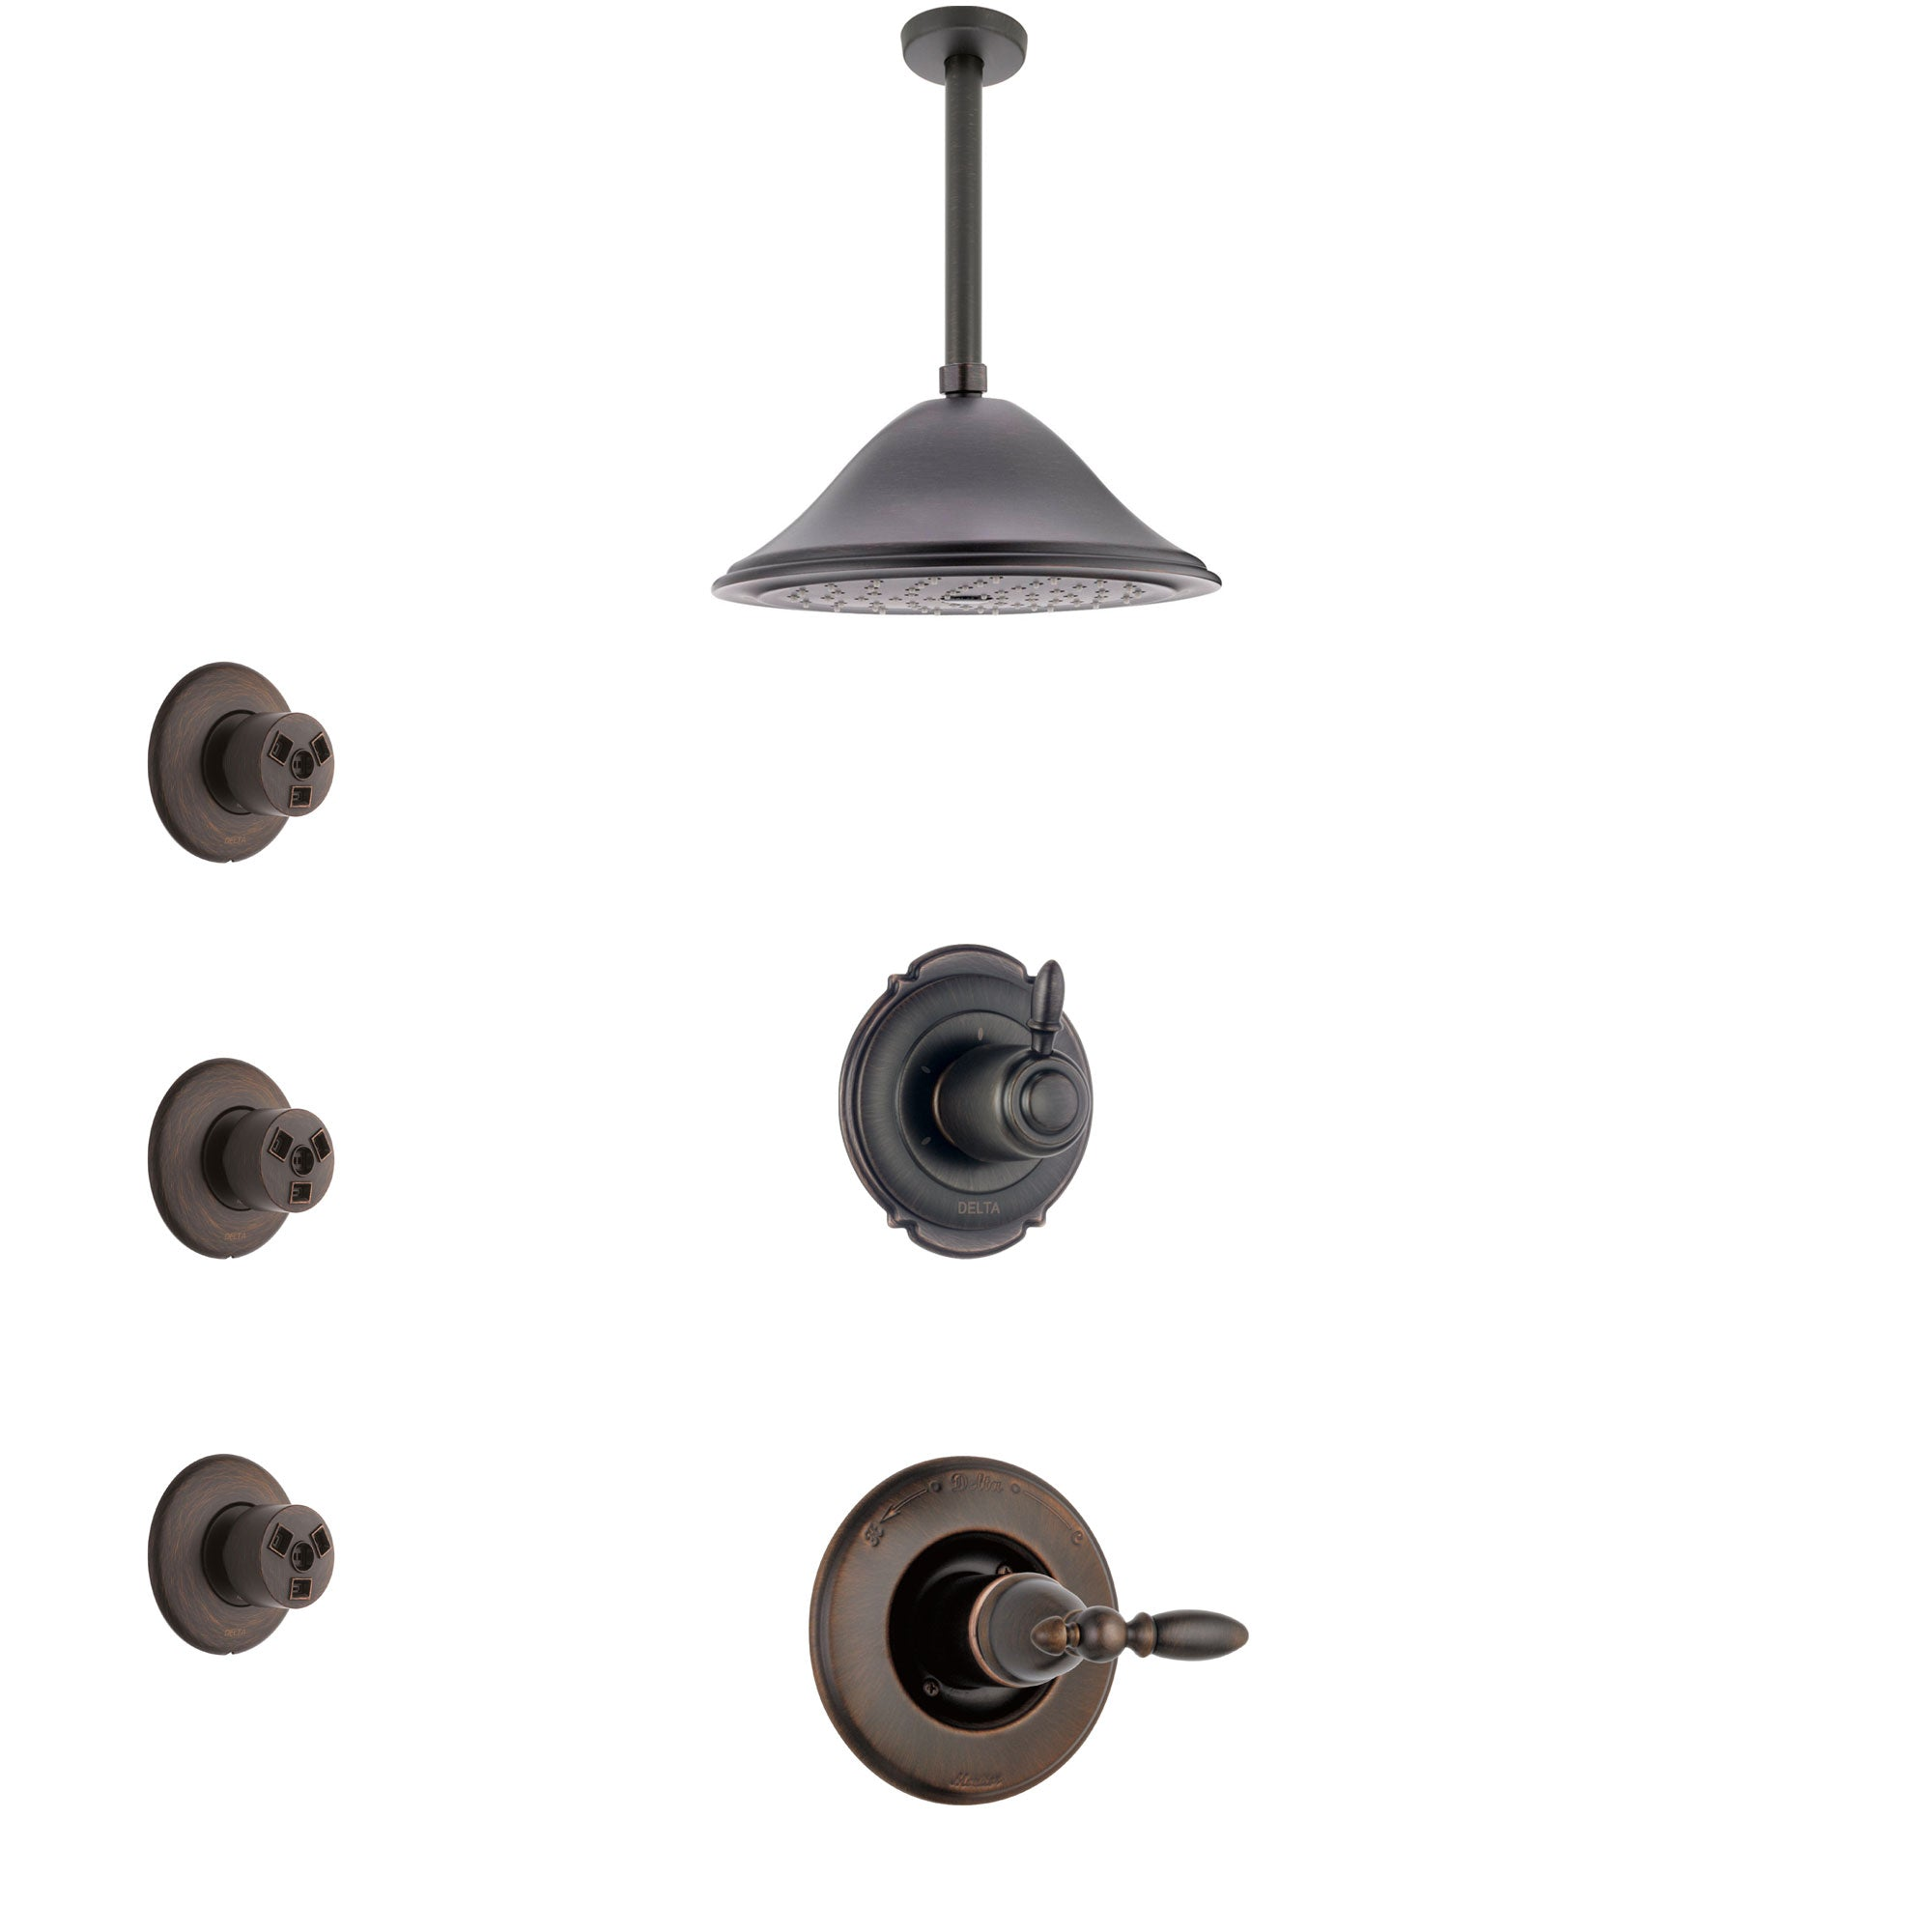 Delta Victorian Venetian Bronze Finish Shower System with Control Handle, 3-Setting Diverter, Ceiling Mount Showerhead, and 3 Body Sprays SS1455RB5